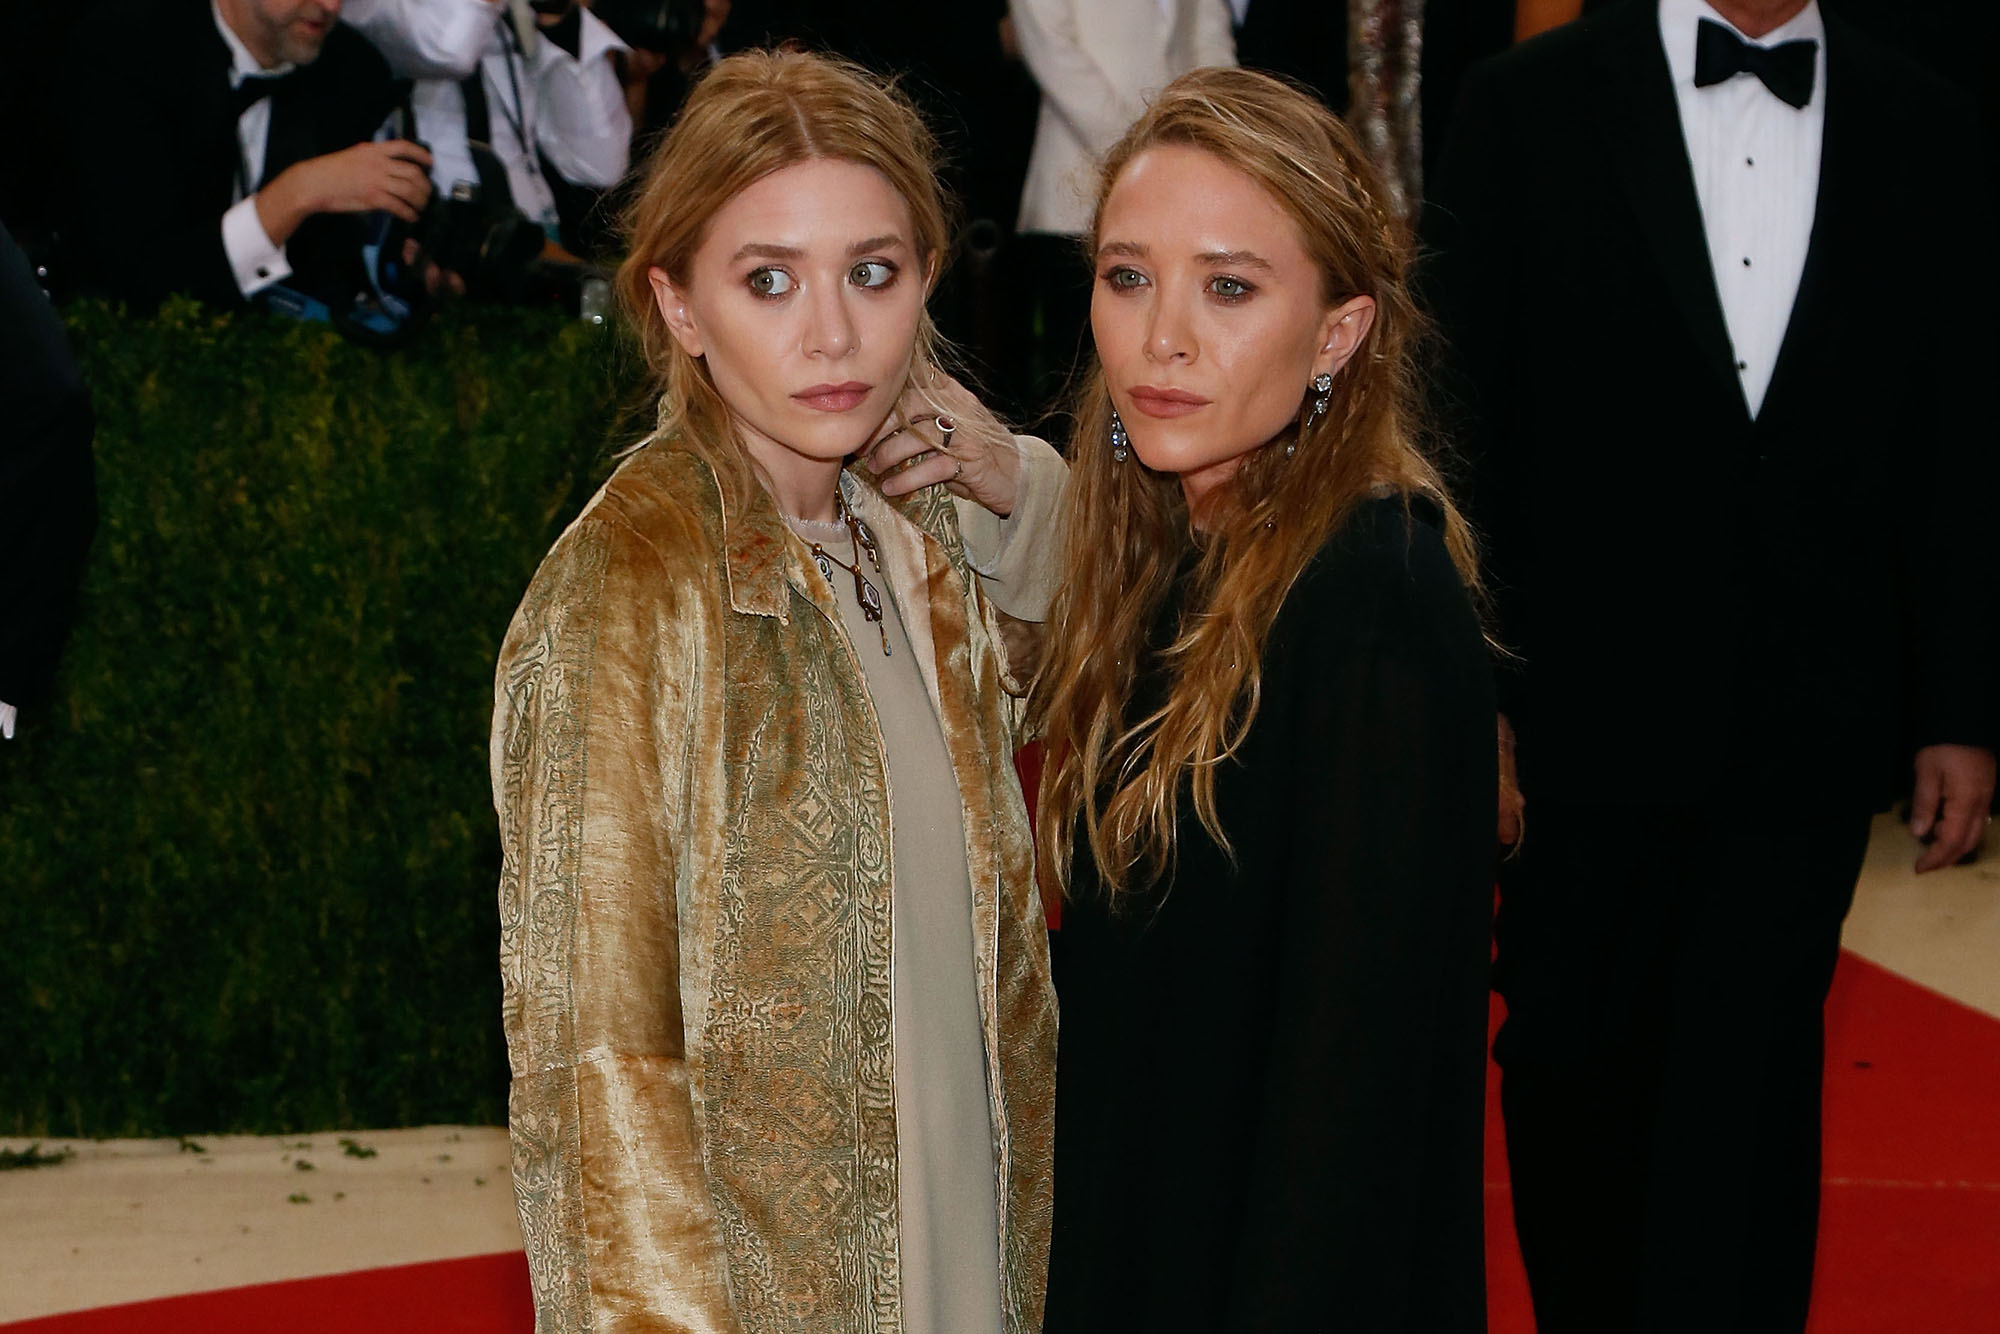 Mary-Kate and Ashley Olsen attend  Manus x Machina: Fashion in an Age of Technology , the 2016 Costume Institute Gala at the Metropolitan Museum of Art on May 02, 2016 in New York, New York.  (Photo by Taylor Hill/FilmMagic)